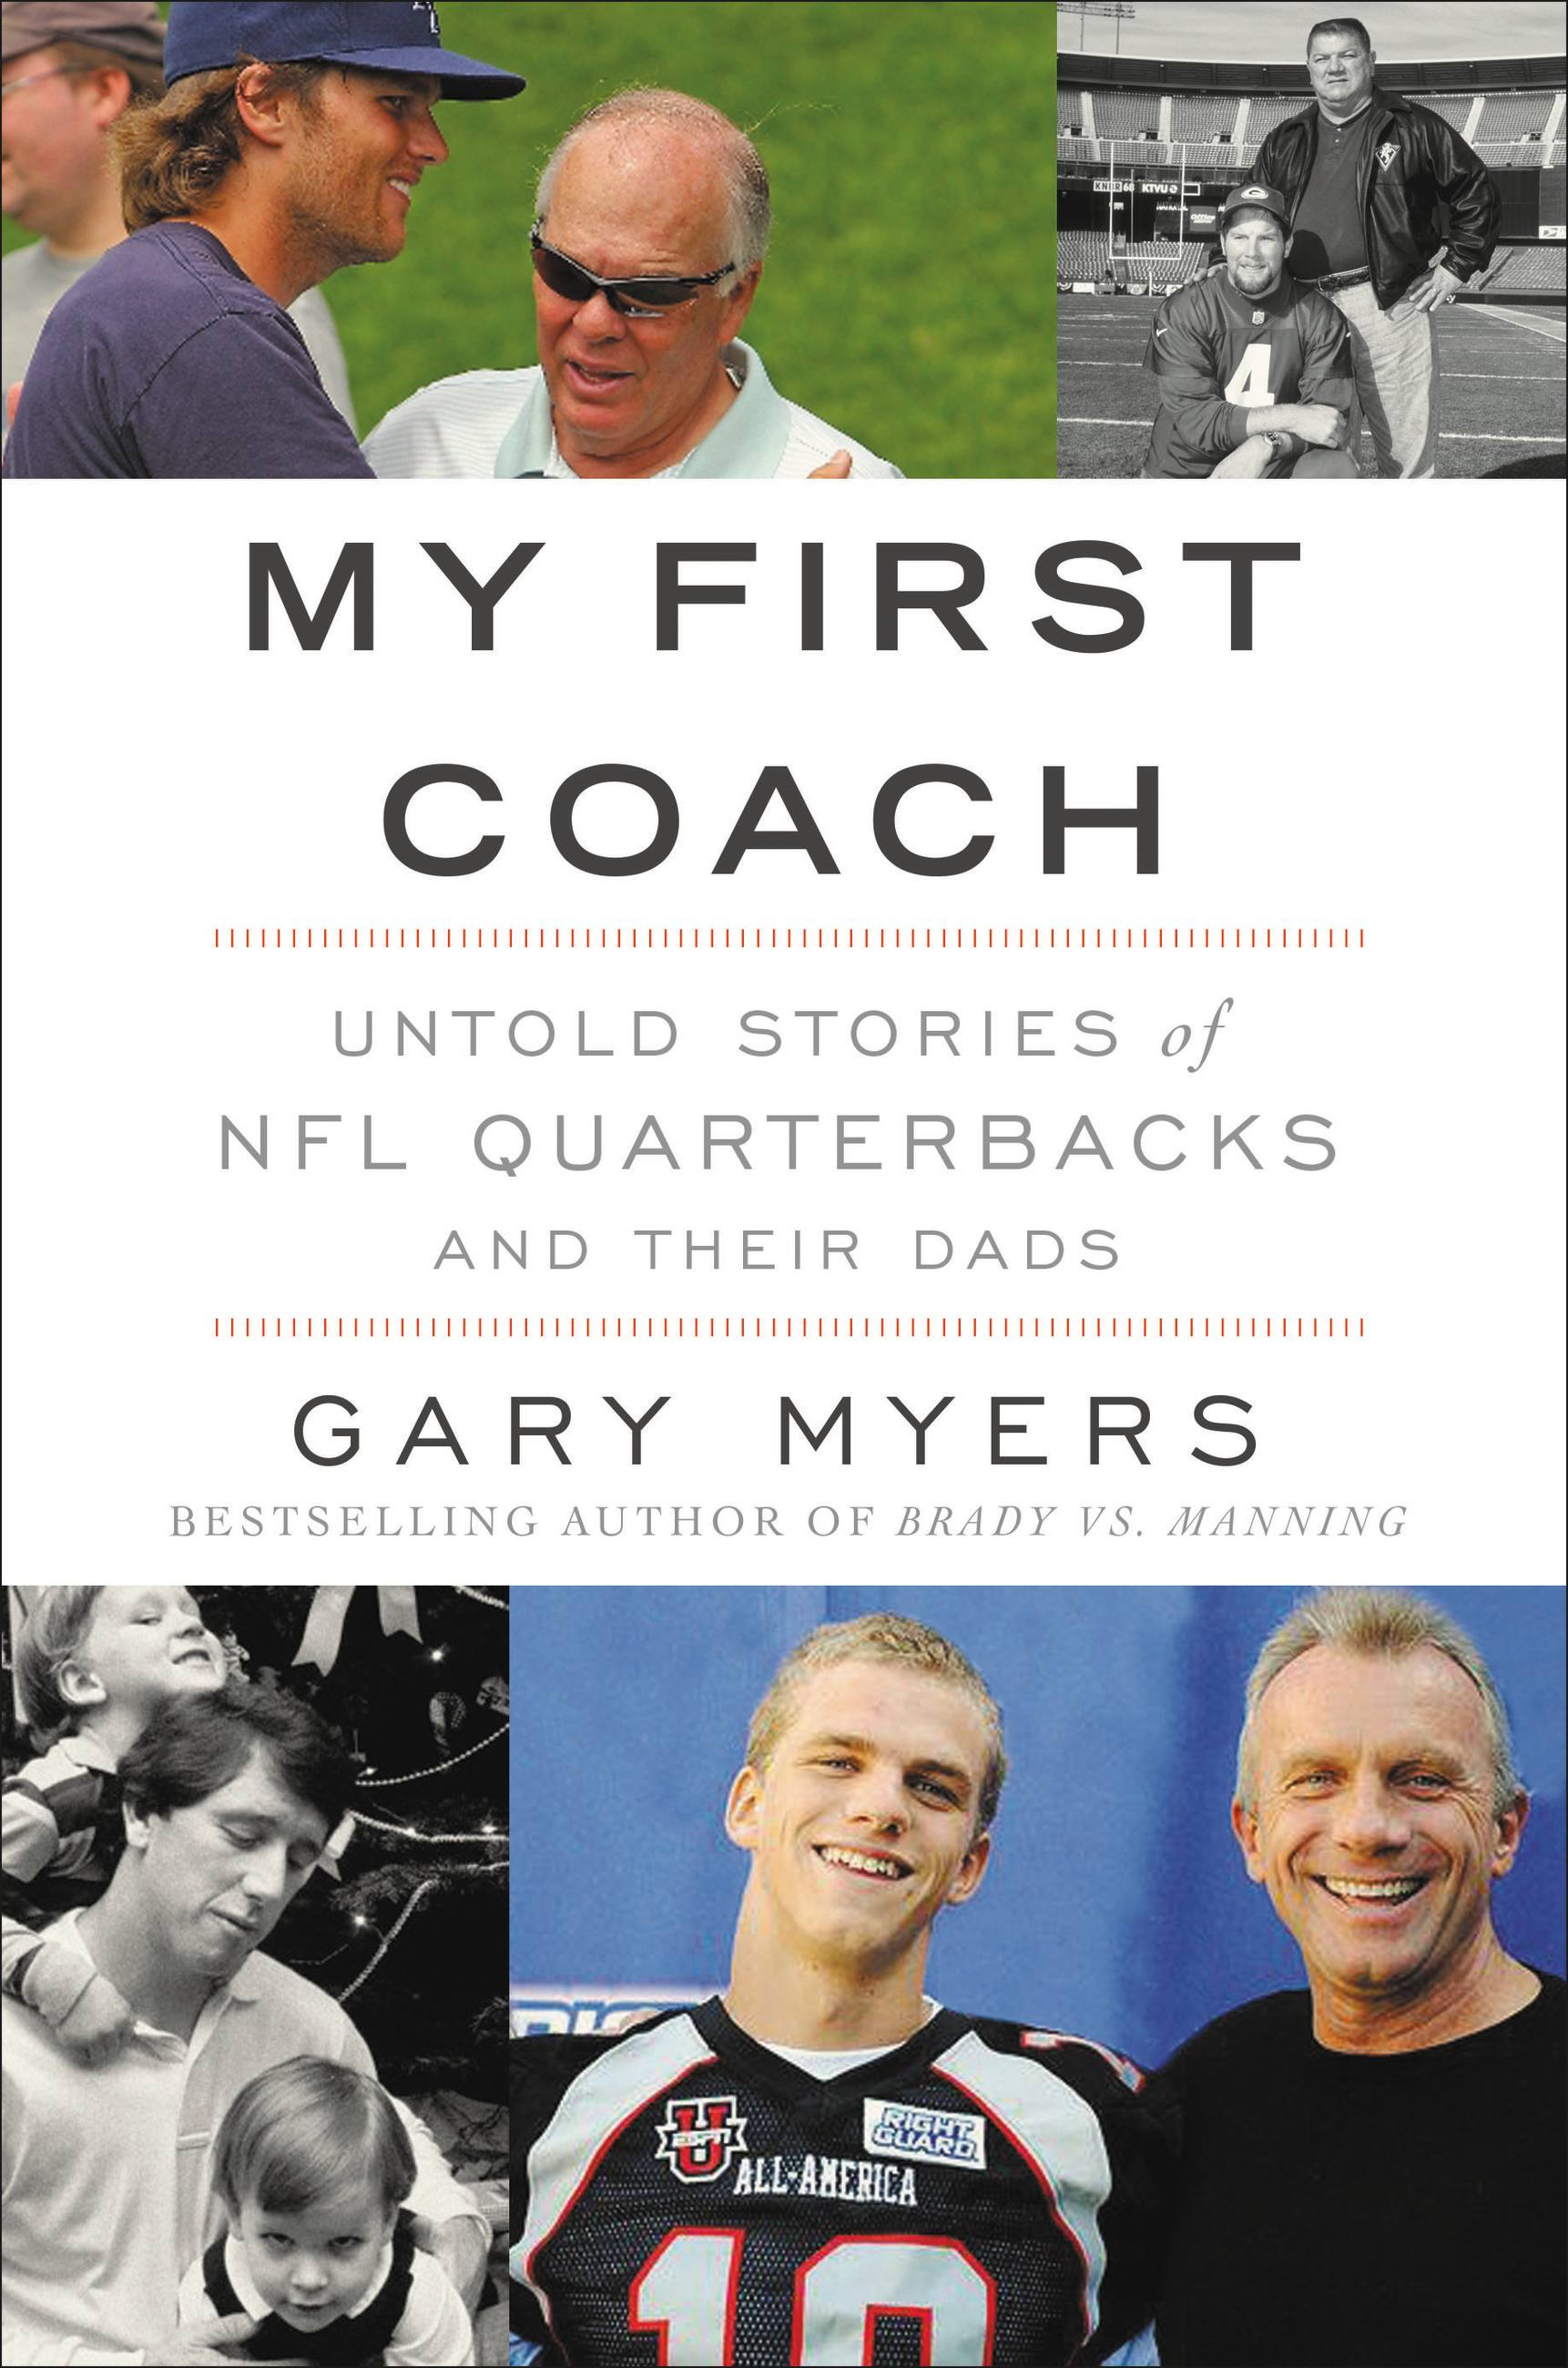 My First Coach Inspiring Stories of NFL Quarterbacks and Their Dads